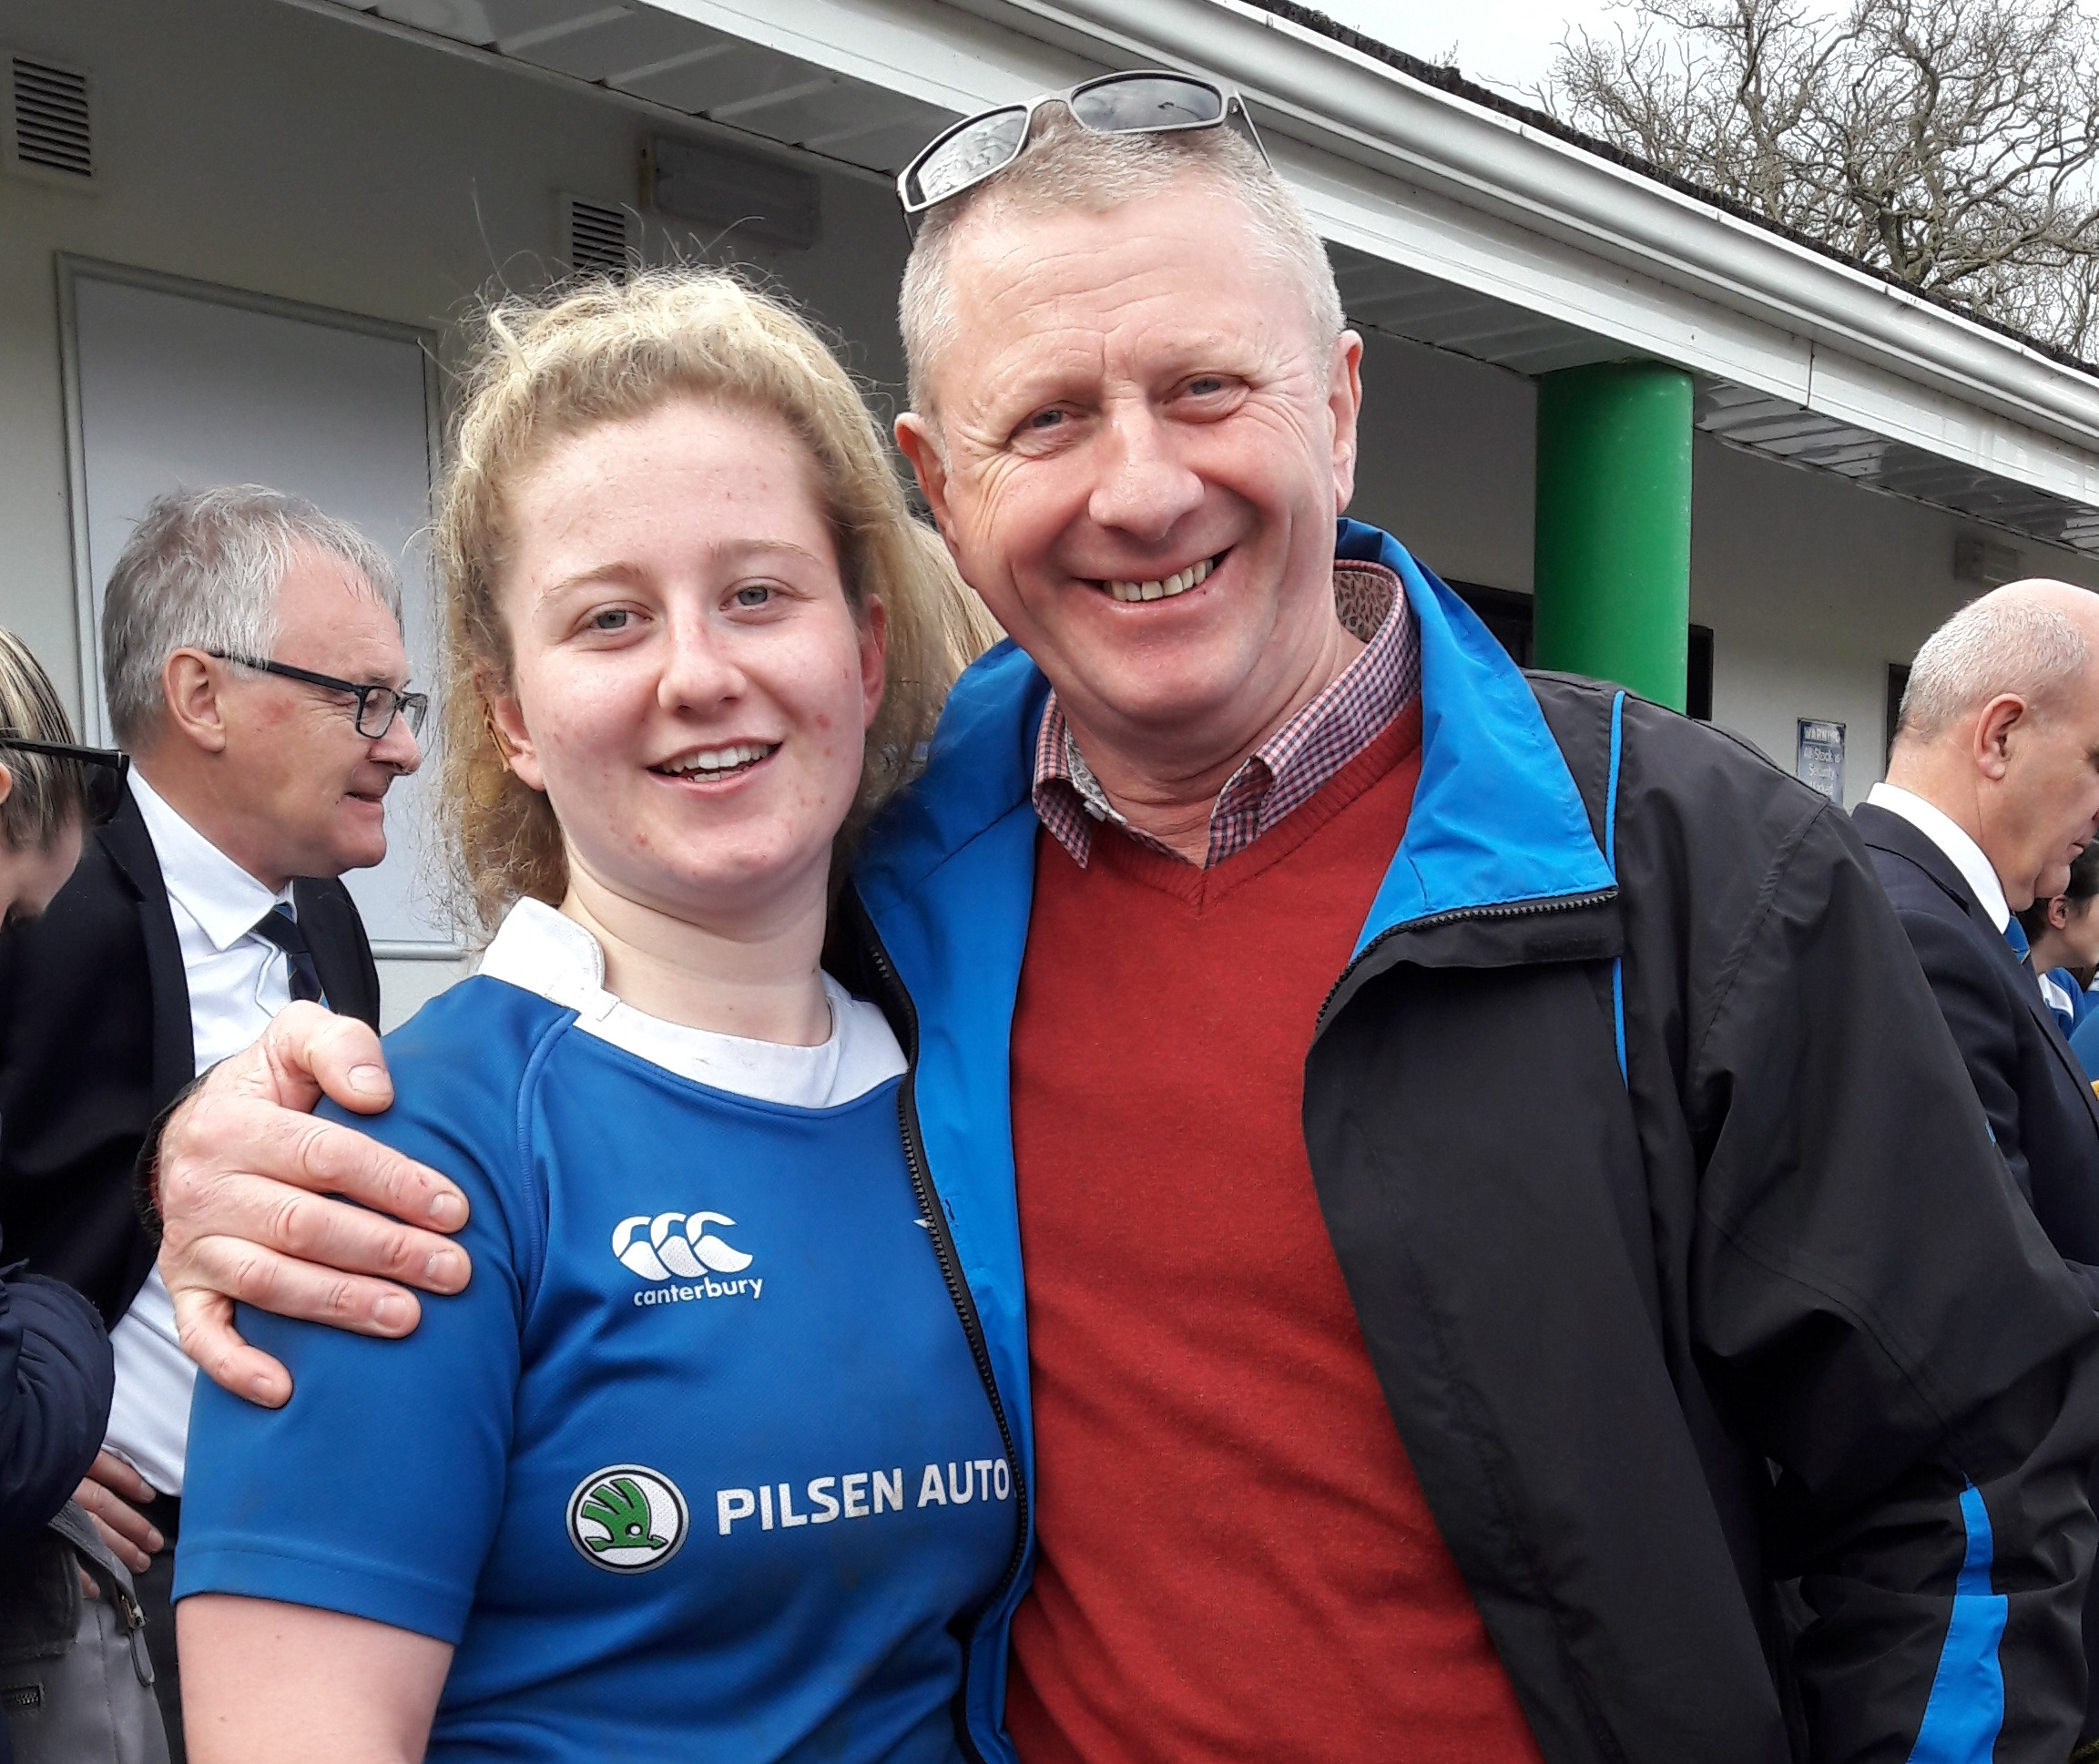 Old Glory Rugby Games: Portlaoise Native Makes Ireland Women's Rugby Match Panel